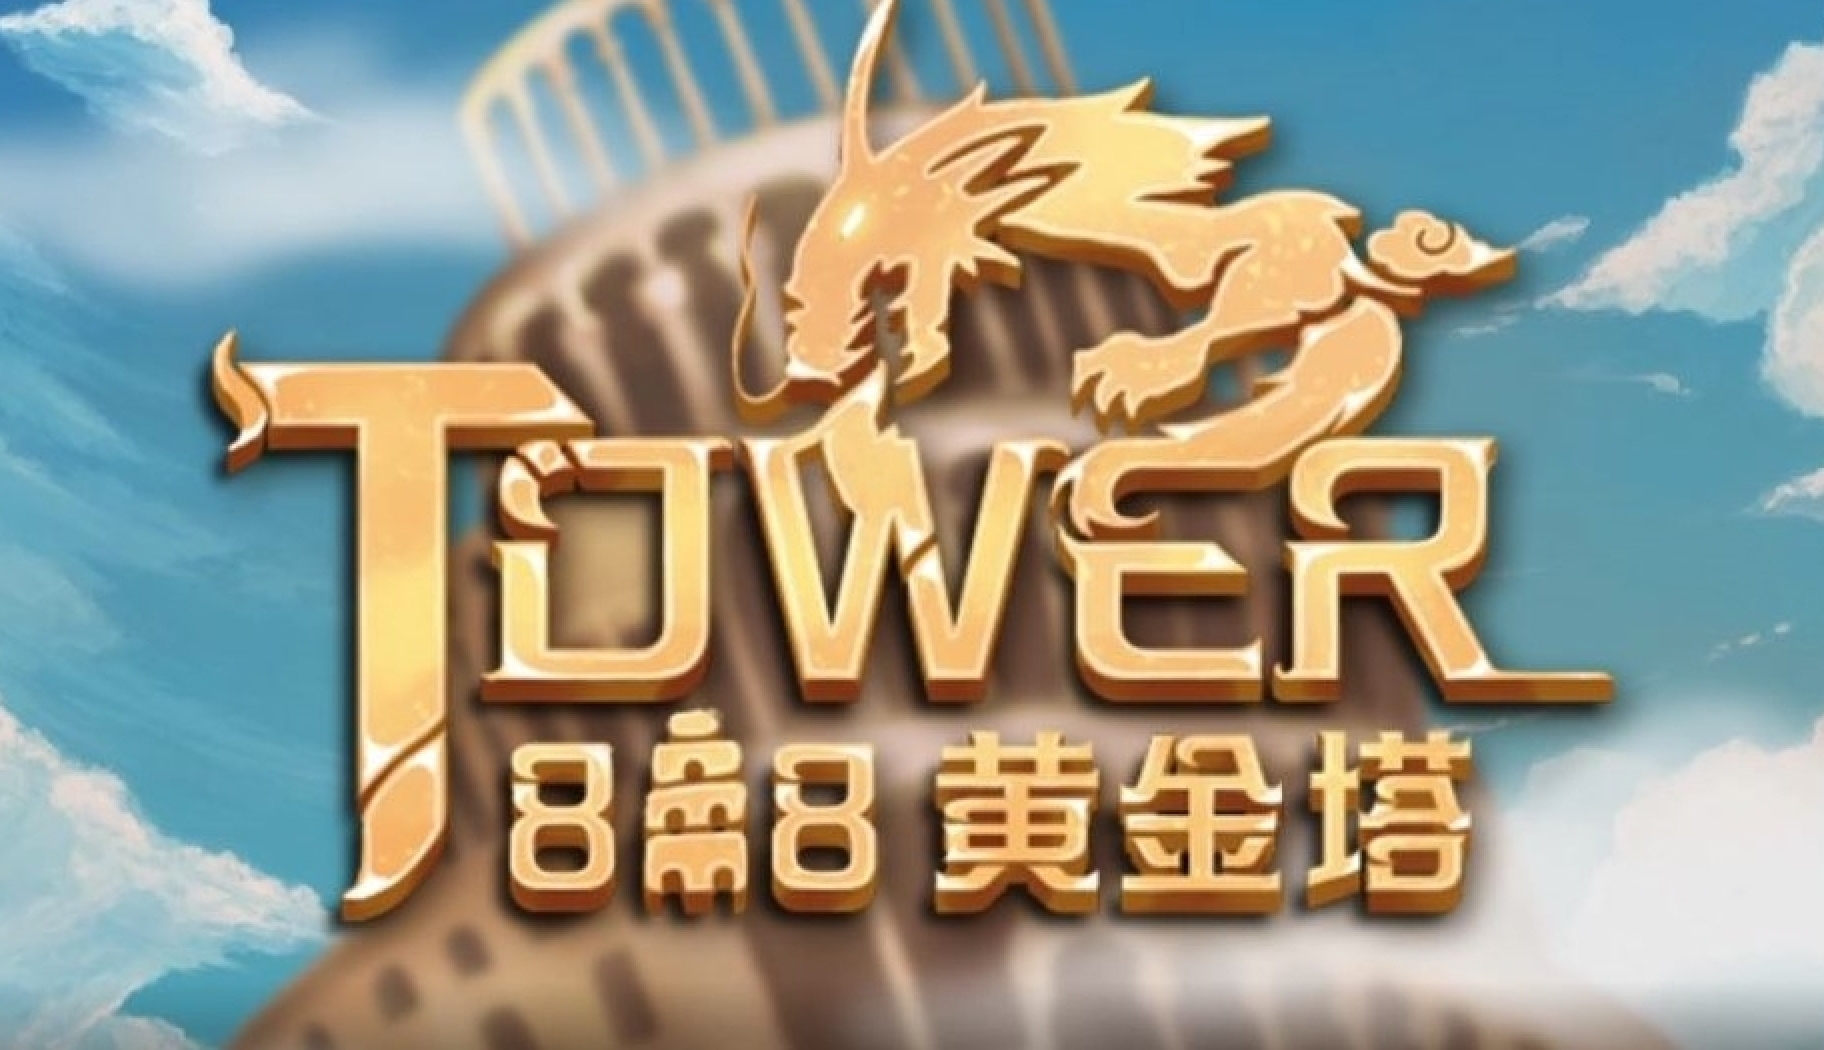 The 888 Tower Online Slot Demo Game by AllWaySpin